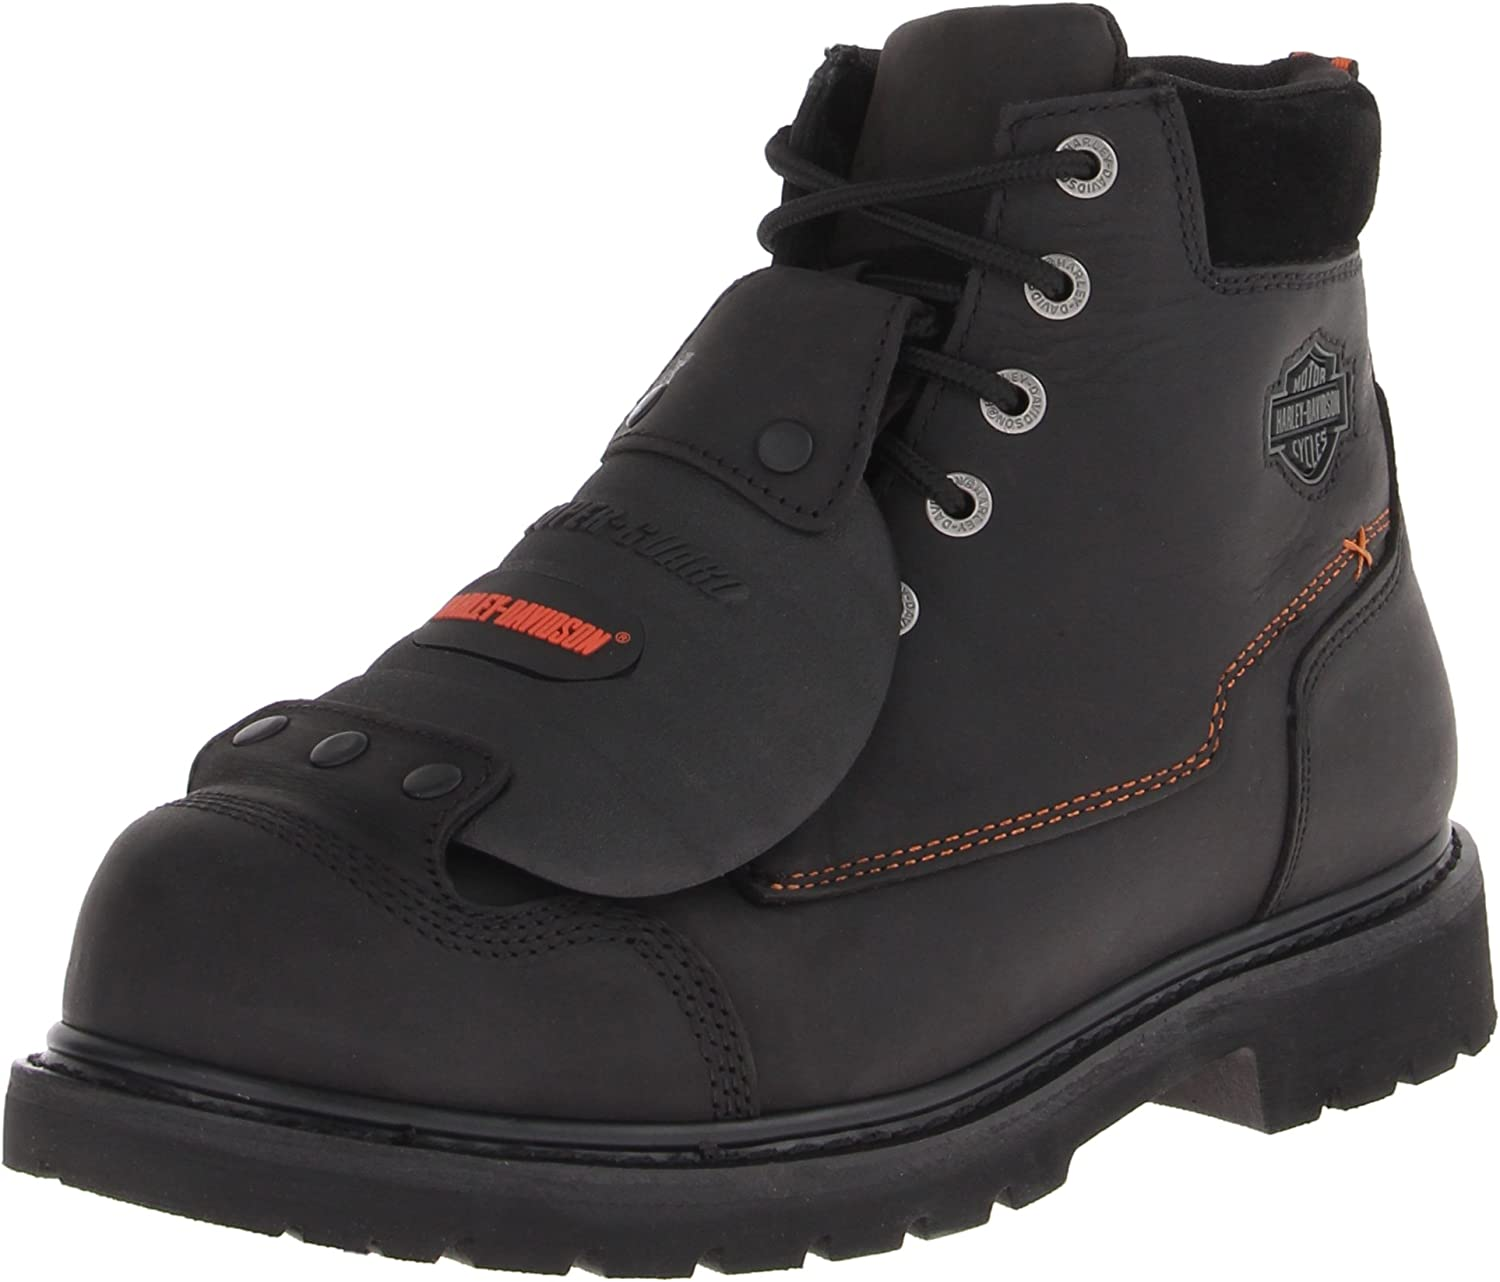 Special sale item Harley-Davidson Men's Jake Steel Toe New Free Shipping Safety Bla Motorcycle Boot